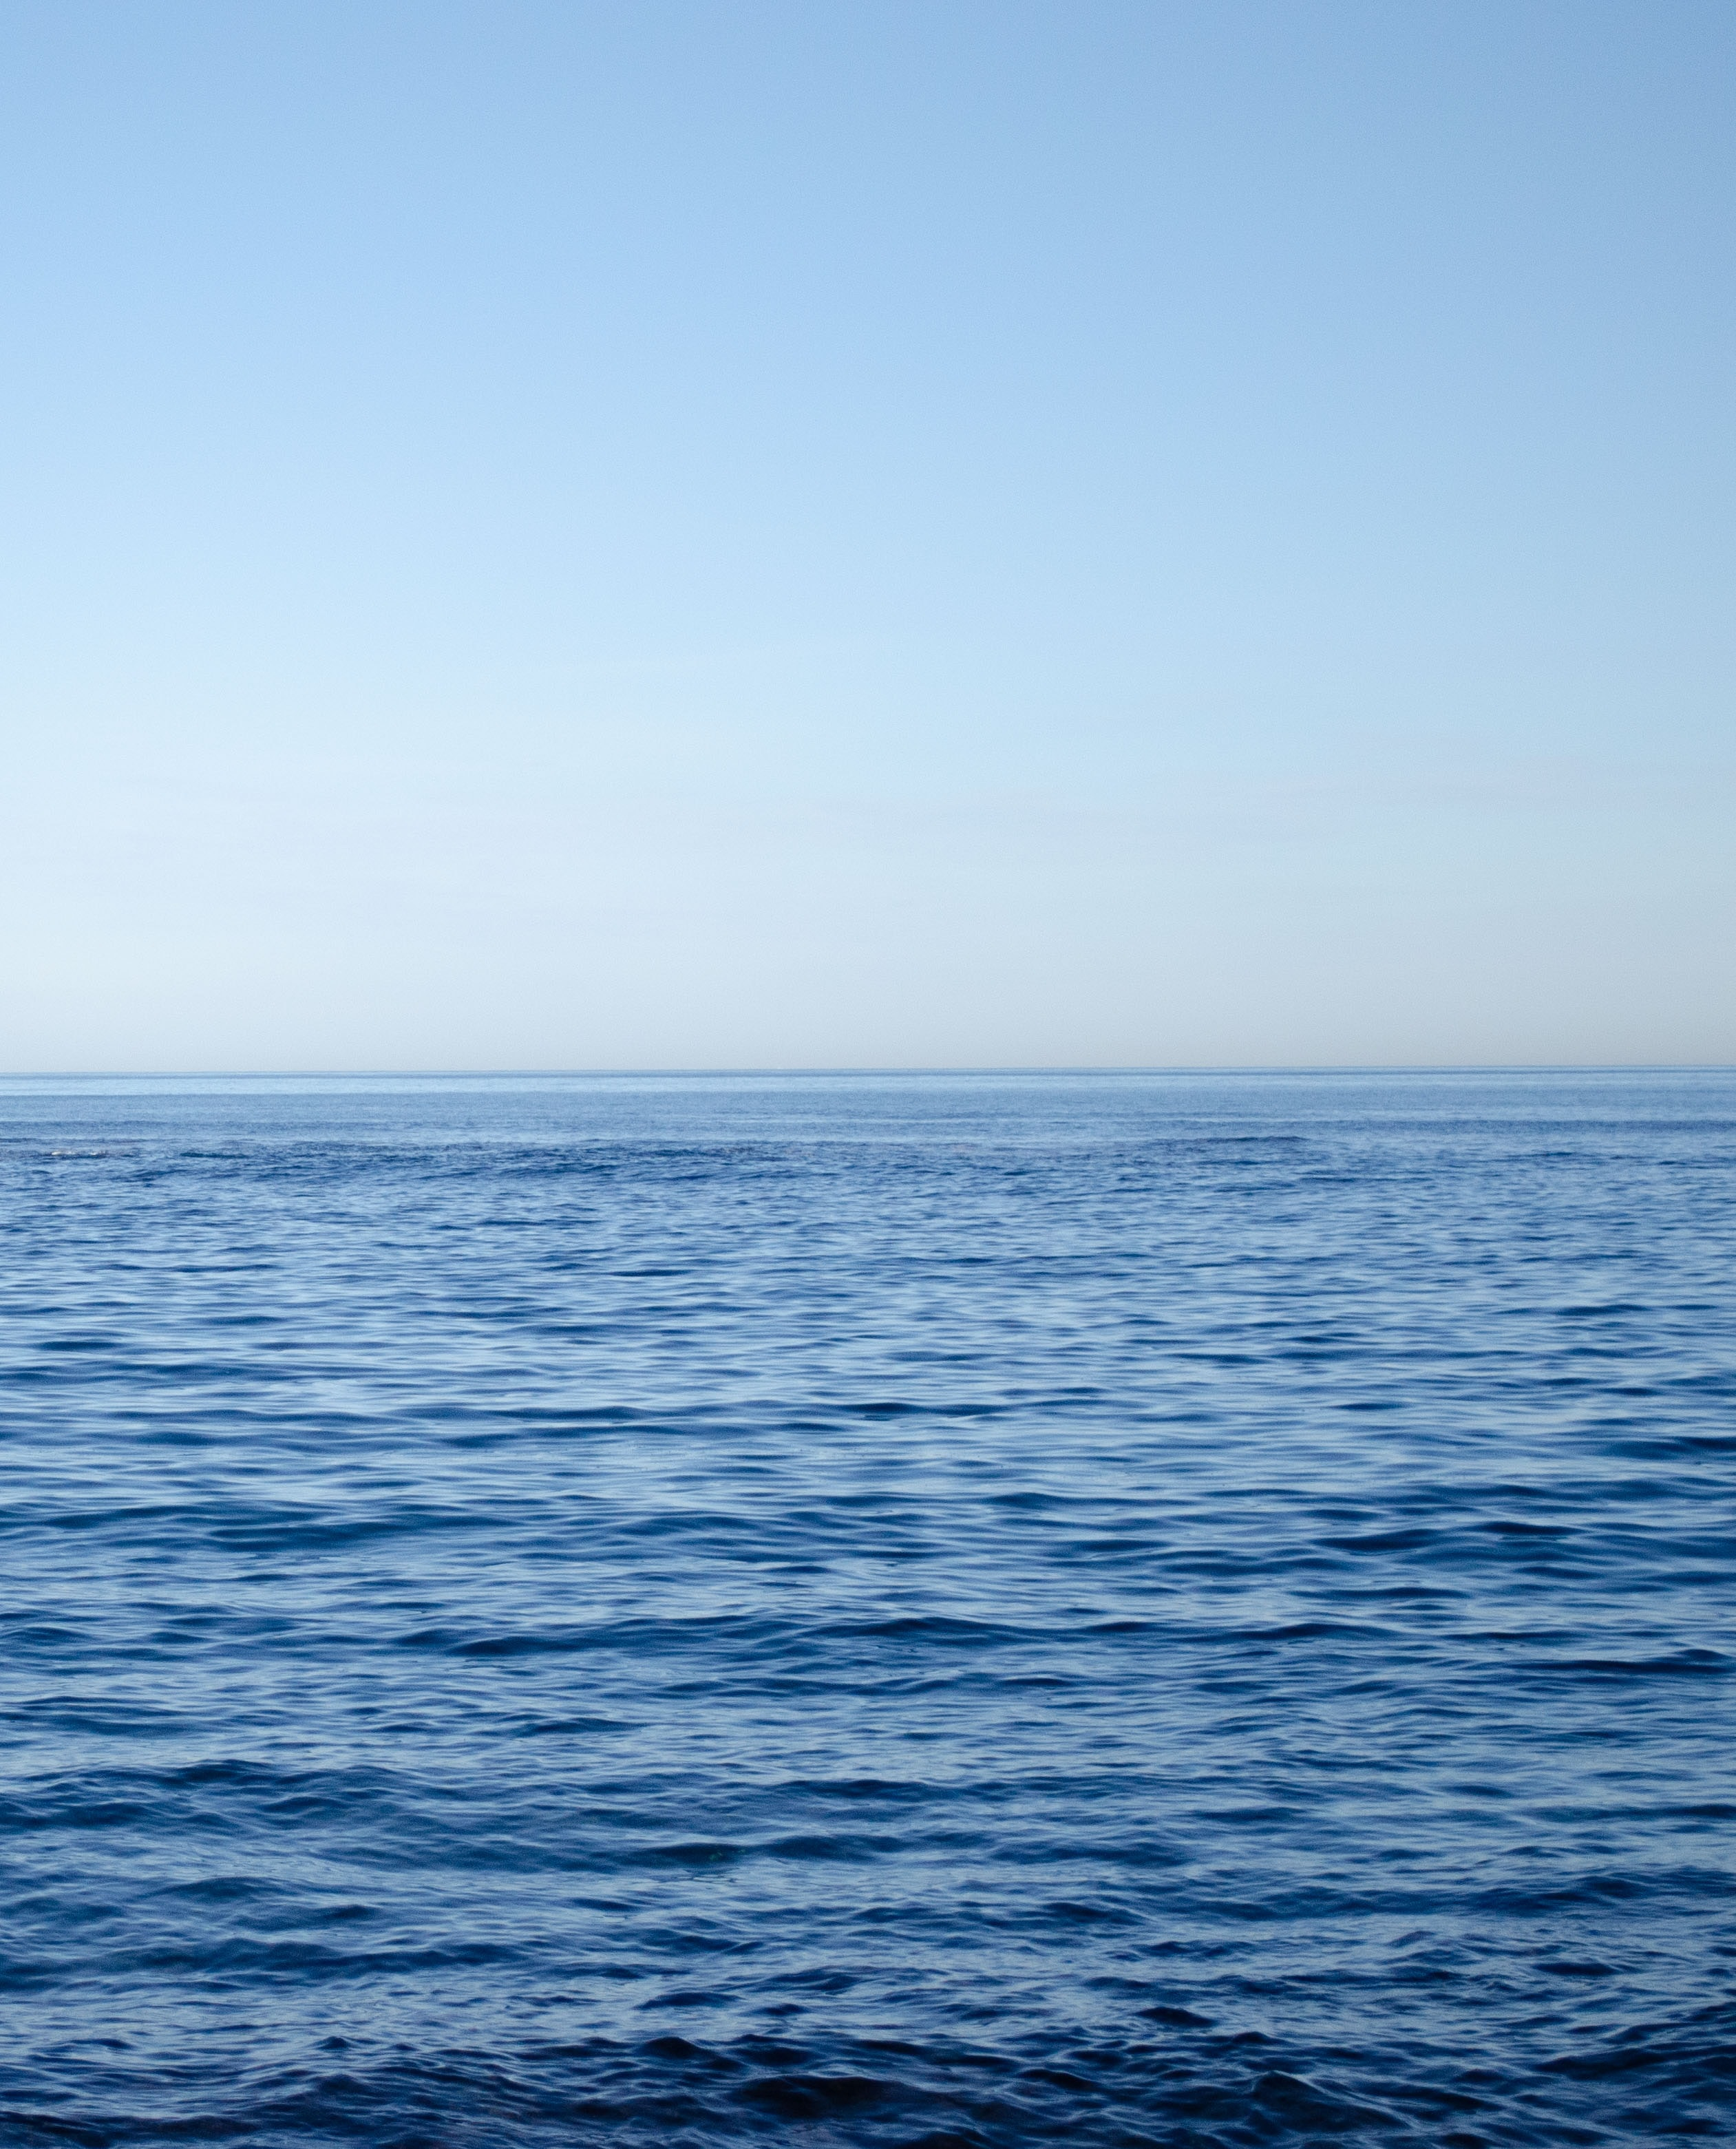 calm sea during daytime